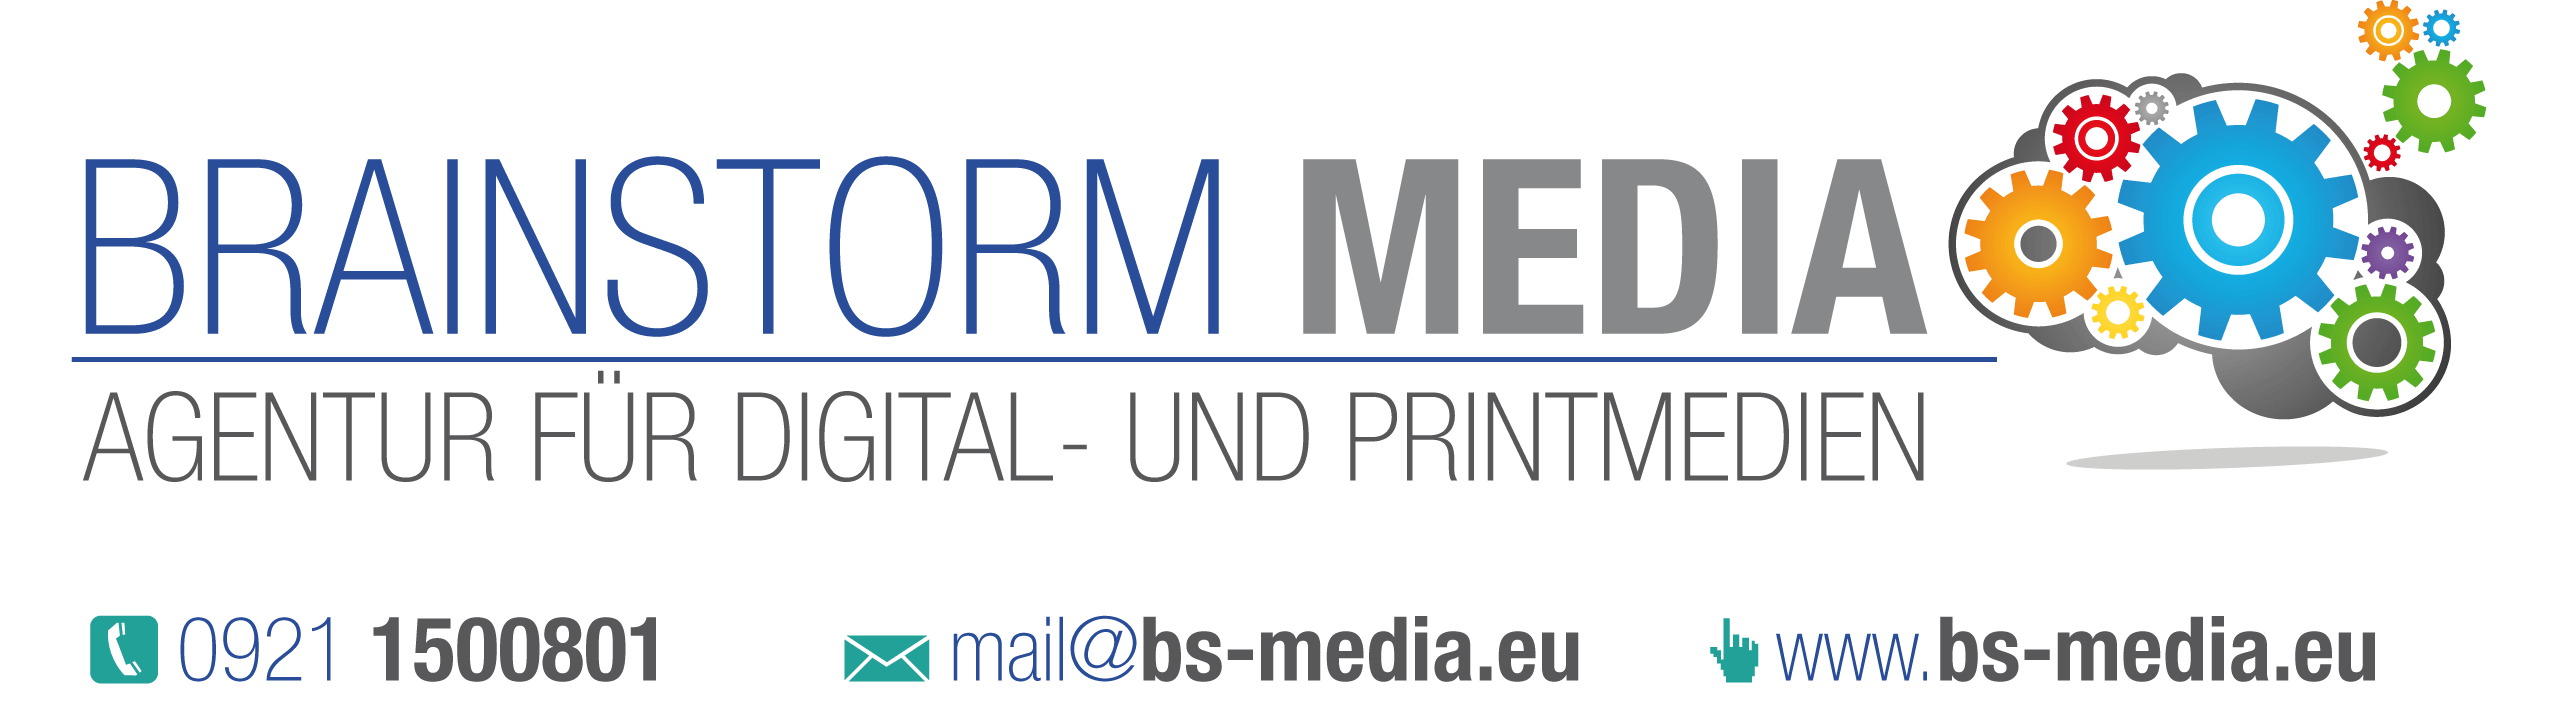 BRAINSTORM MEDIA DESIGN